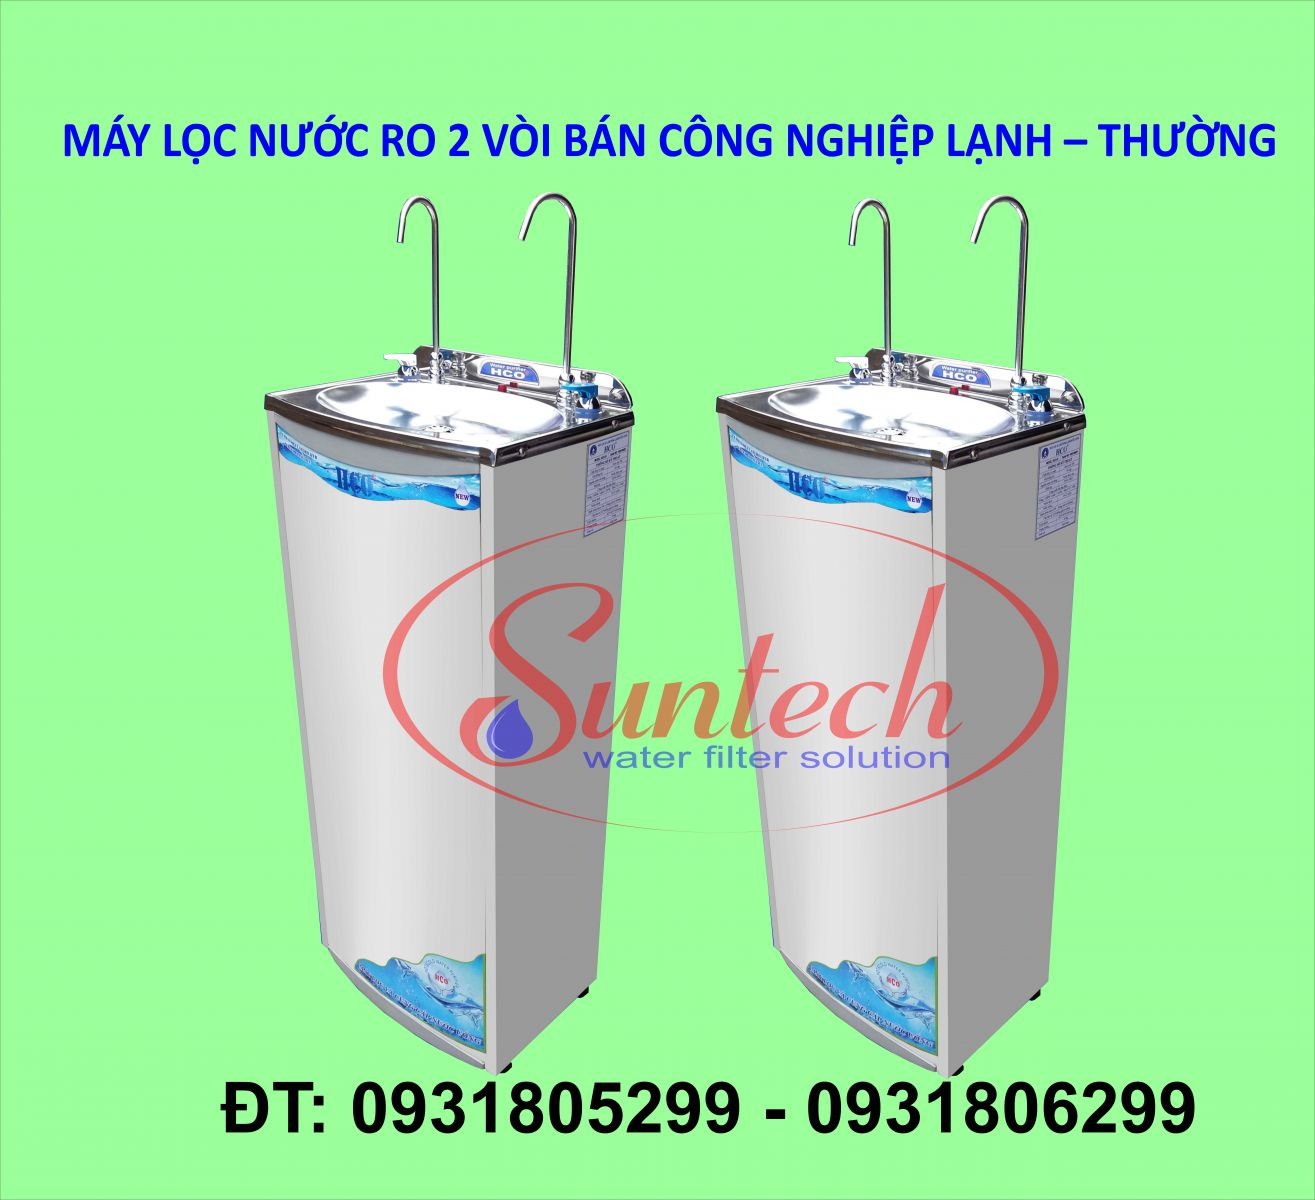 may-loc-nuoc-ro-2-voi-ban-cong-nghiep-lanh-thuong